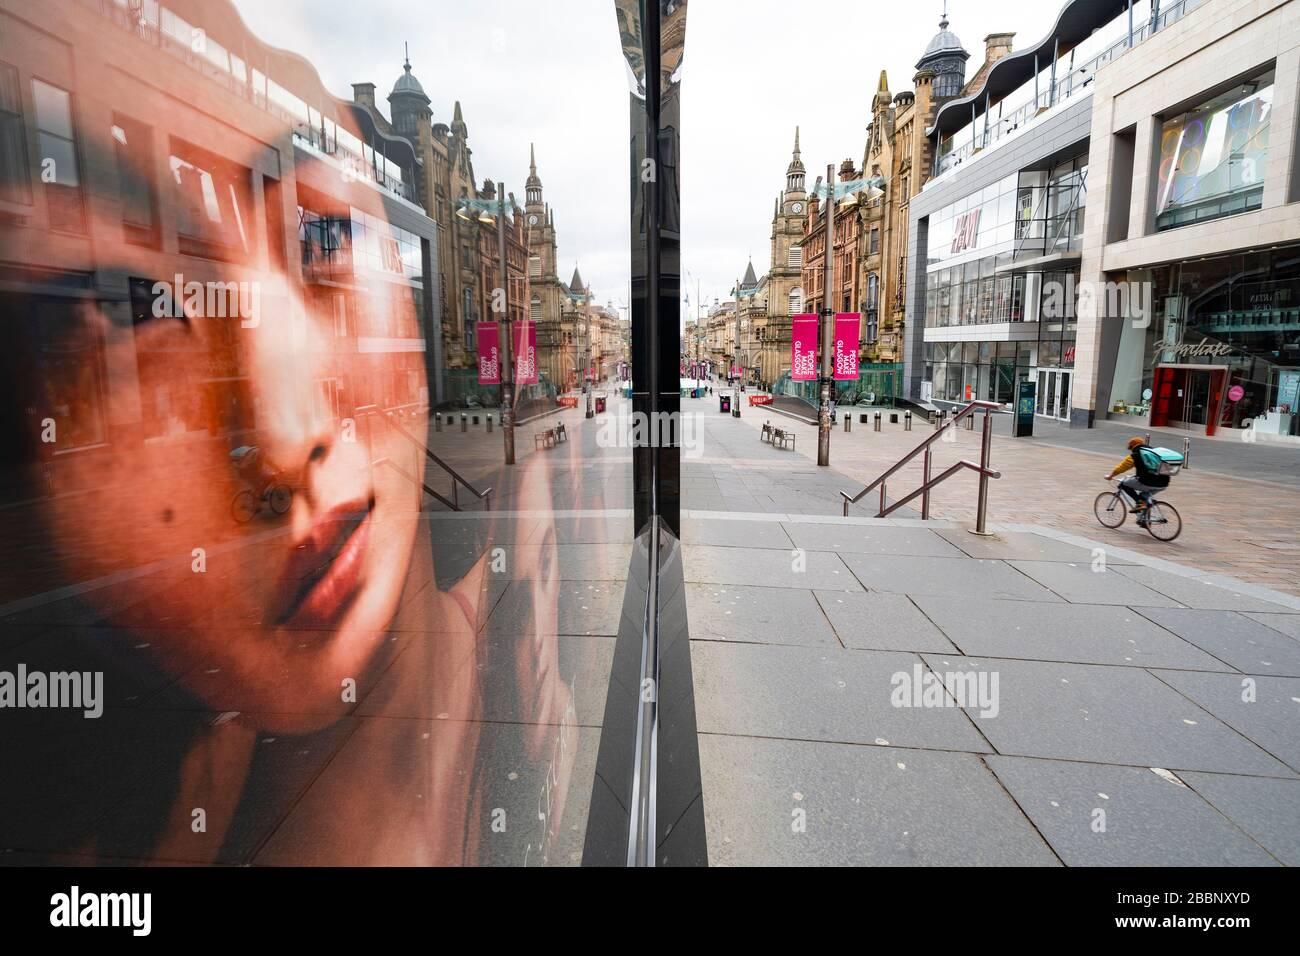 Glasgow, Scotland, UK. 1 April, 2020. Effects of Coronavirus lockdown on streets of Glasgow, Scotland. Photo of model in Victoria's Secret shop looks out on a deserted Buchanan Street with a lone Deliveroo cyclist riding past .Iain Masterton/Alamy Live News Stock Photo